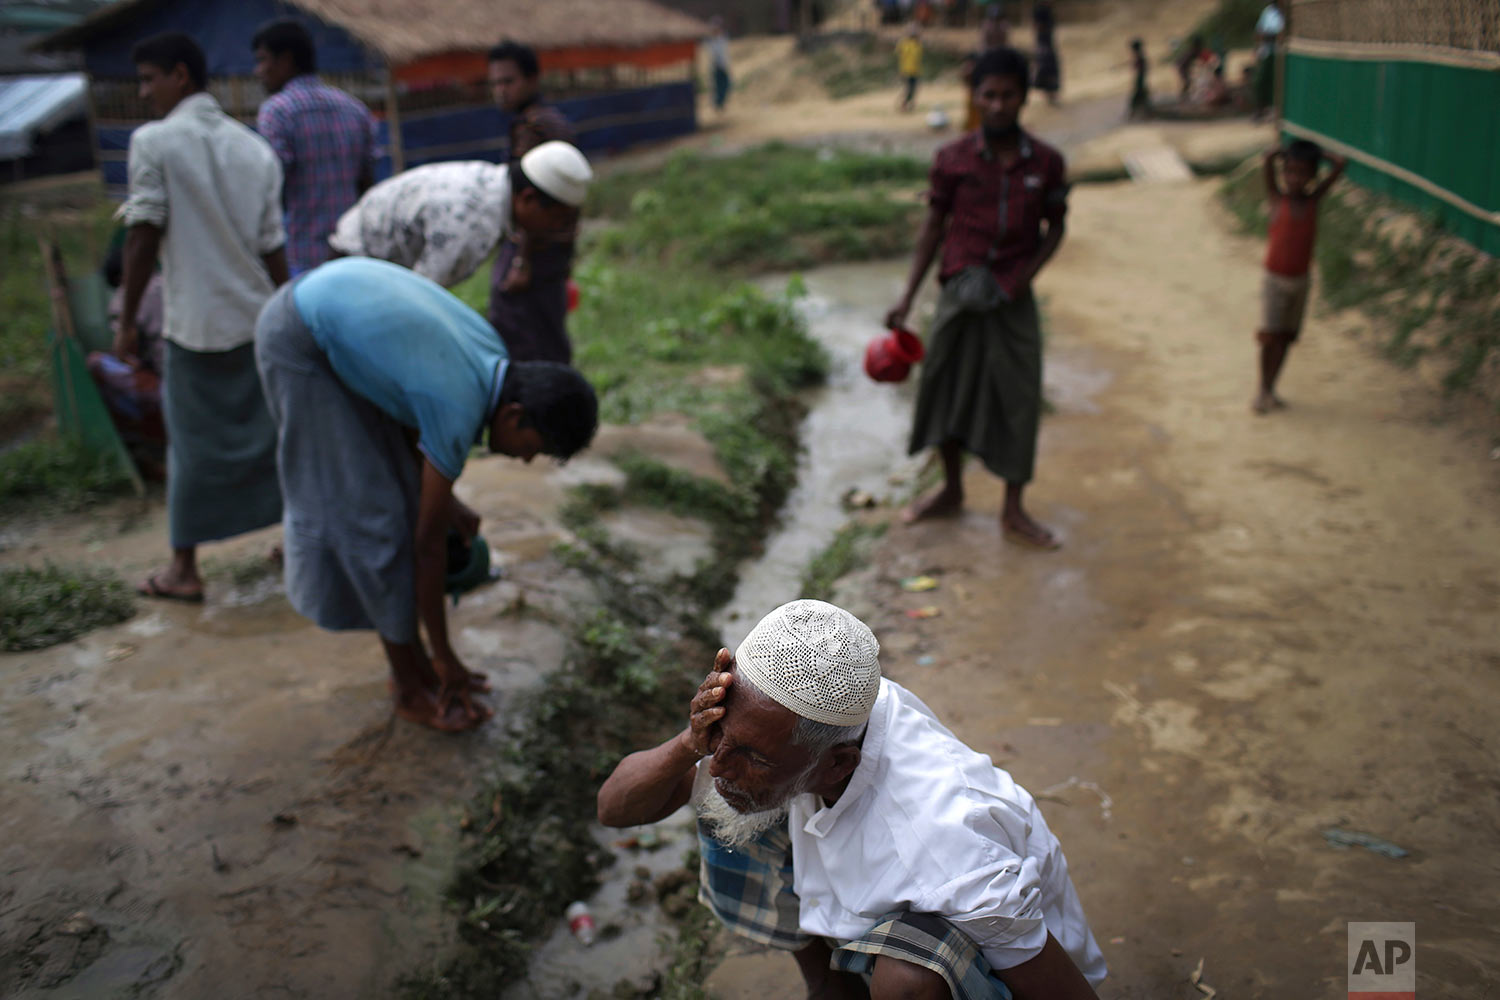 "A Rohingya Muslim man washes his face before Friday prayers outside a makeshift mosque in Jamtoli refugee camp on Friday, Nov. 24, 2017, in Bangladesh. Since late August, more than 620,000 Rohingya have fled Myanmar's Rakhine state into neighboring Bangladesh, seeking safety from what the military described as ""clearance operations."" The United Nations and others have said the military's actions appeared to be a campaign of ""ethnic cleansing,"" using acts of violence and intimidation and burning down homes to force the Rohingya to leave their communities. (AP Photo/Wong Maye-E)"